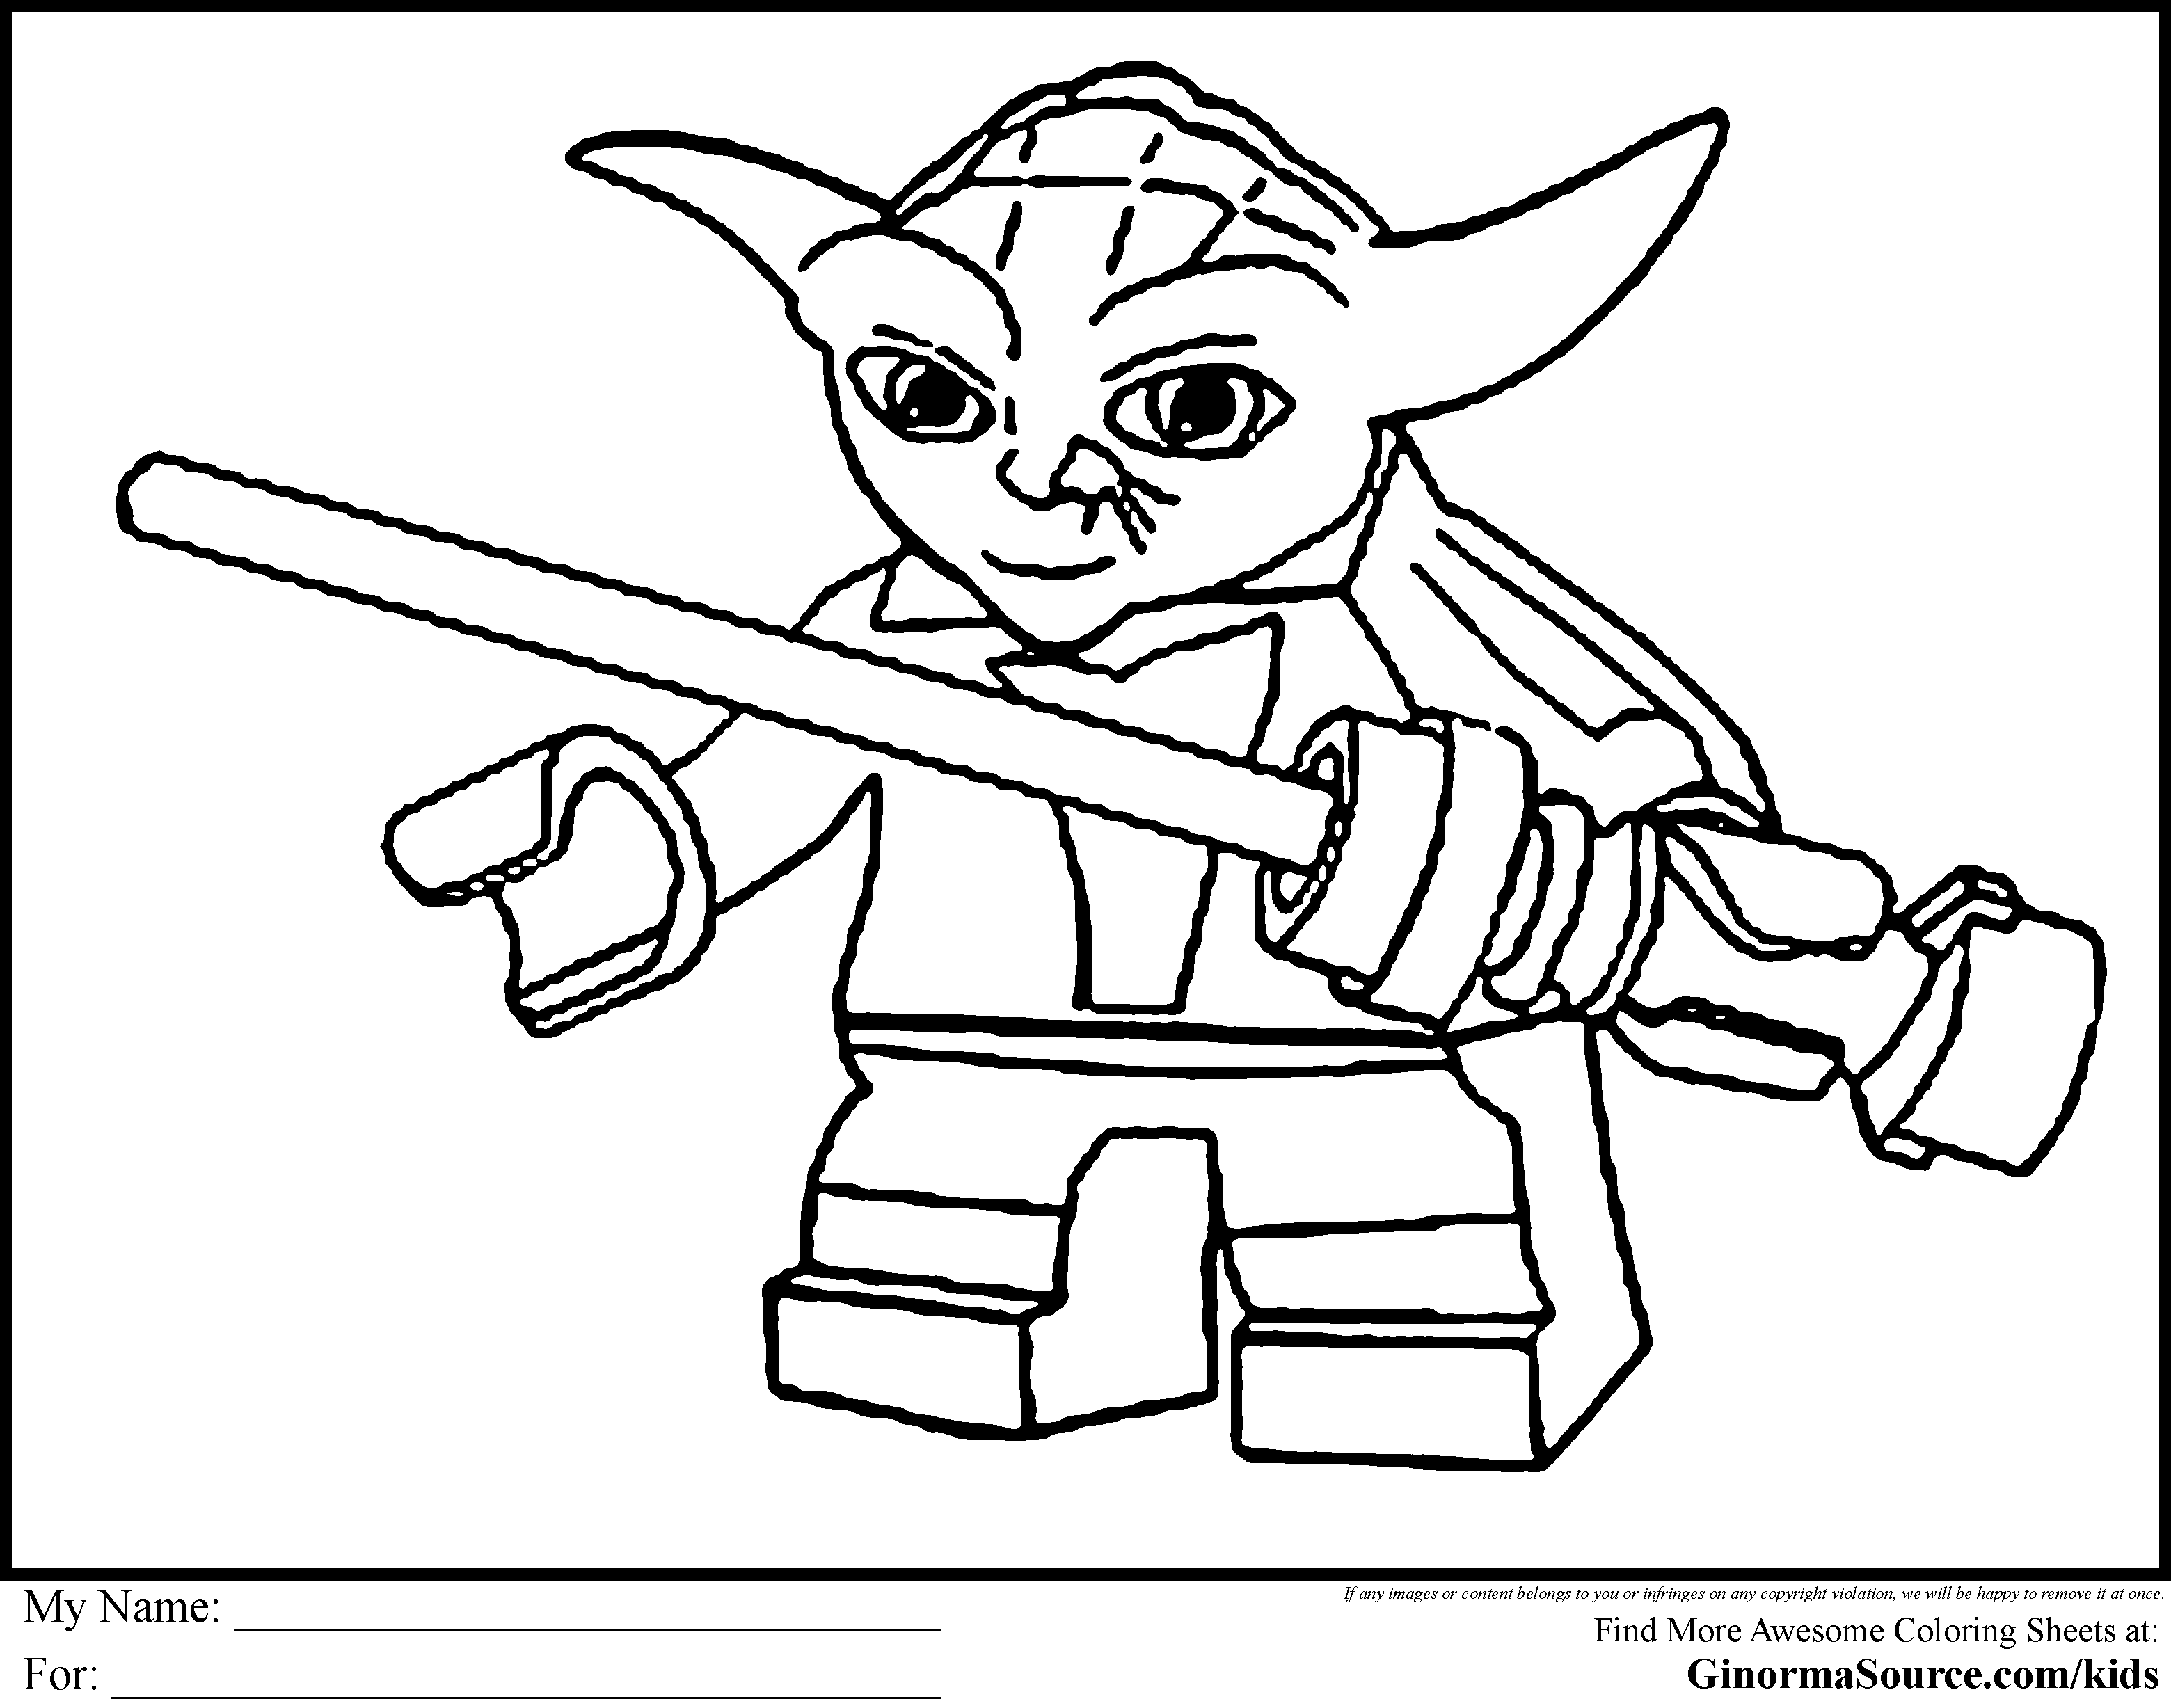 star wars print out coloring pages star wars 3 clone wars coloring pages print out out print wars pages star coloring